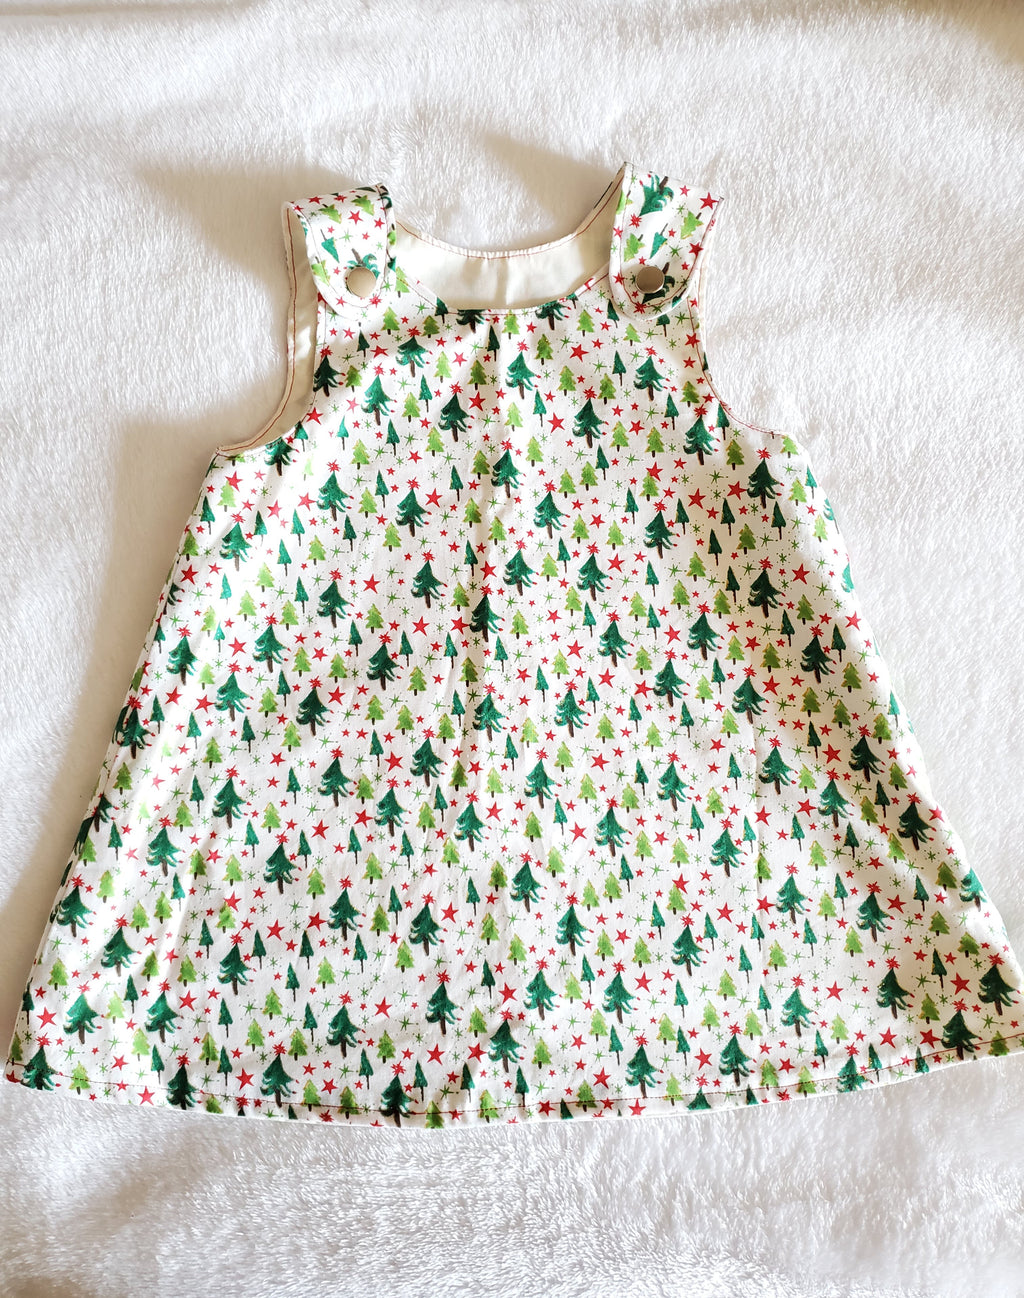 Christmas tree dress 18-24M